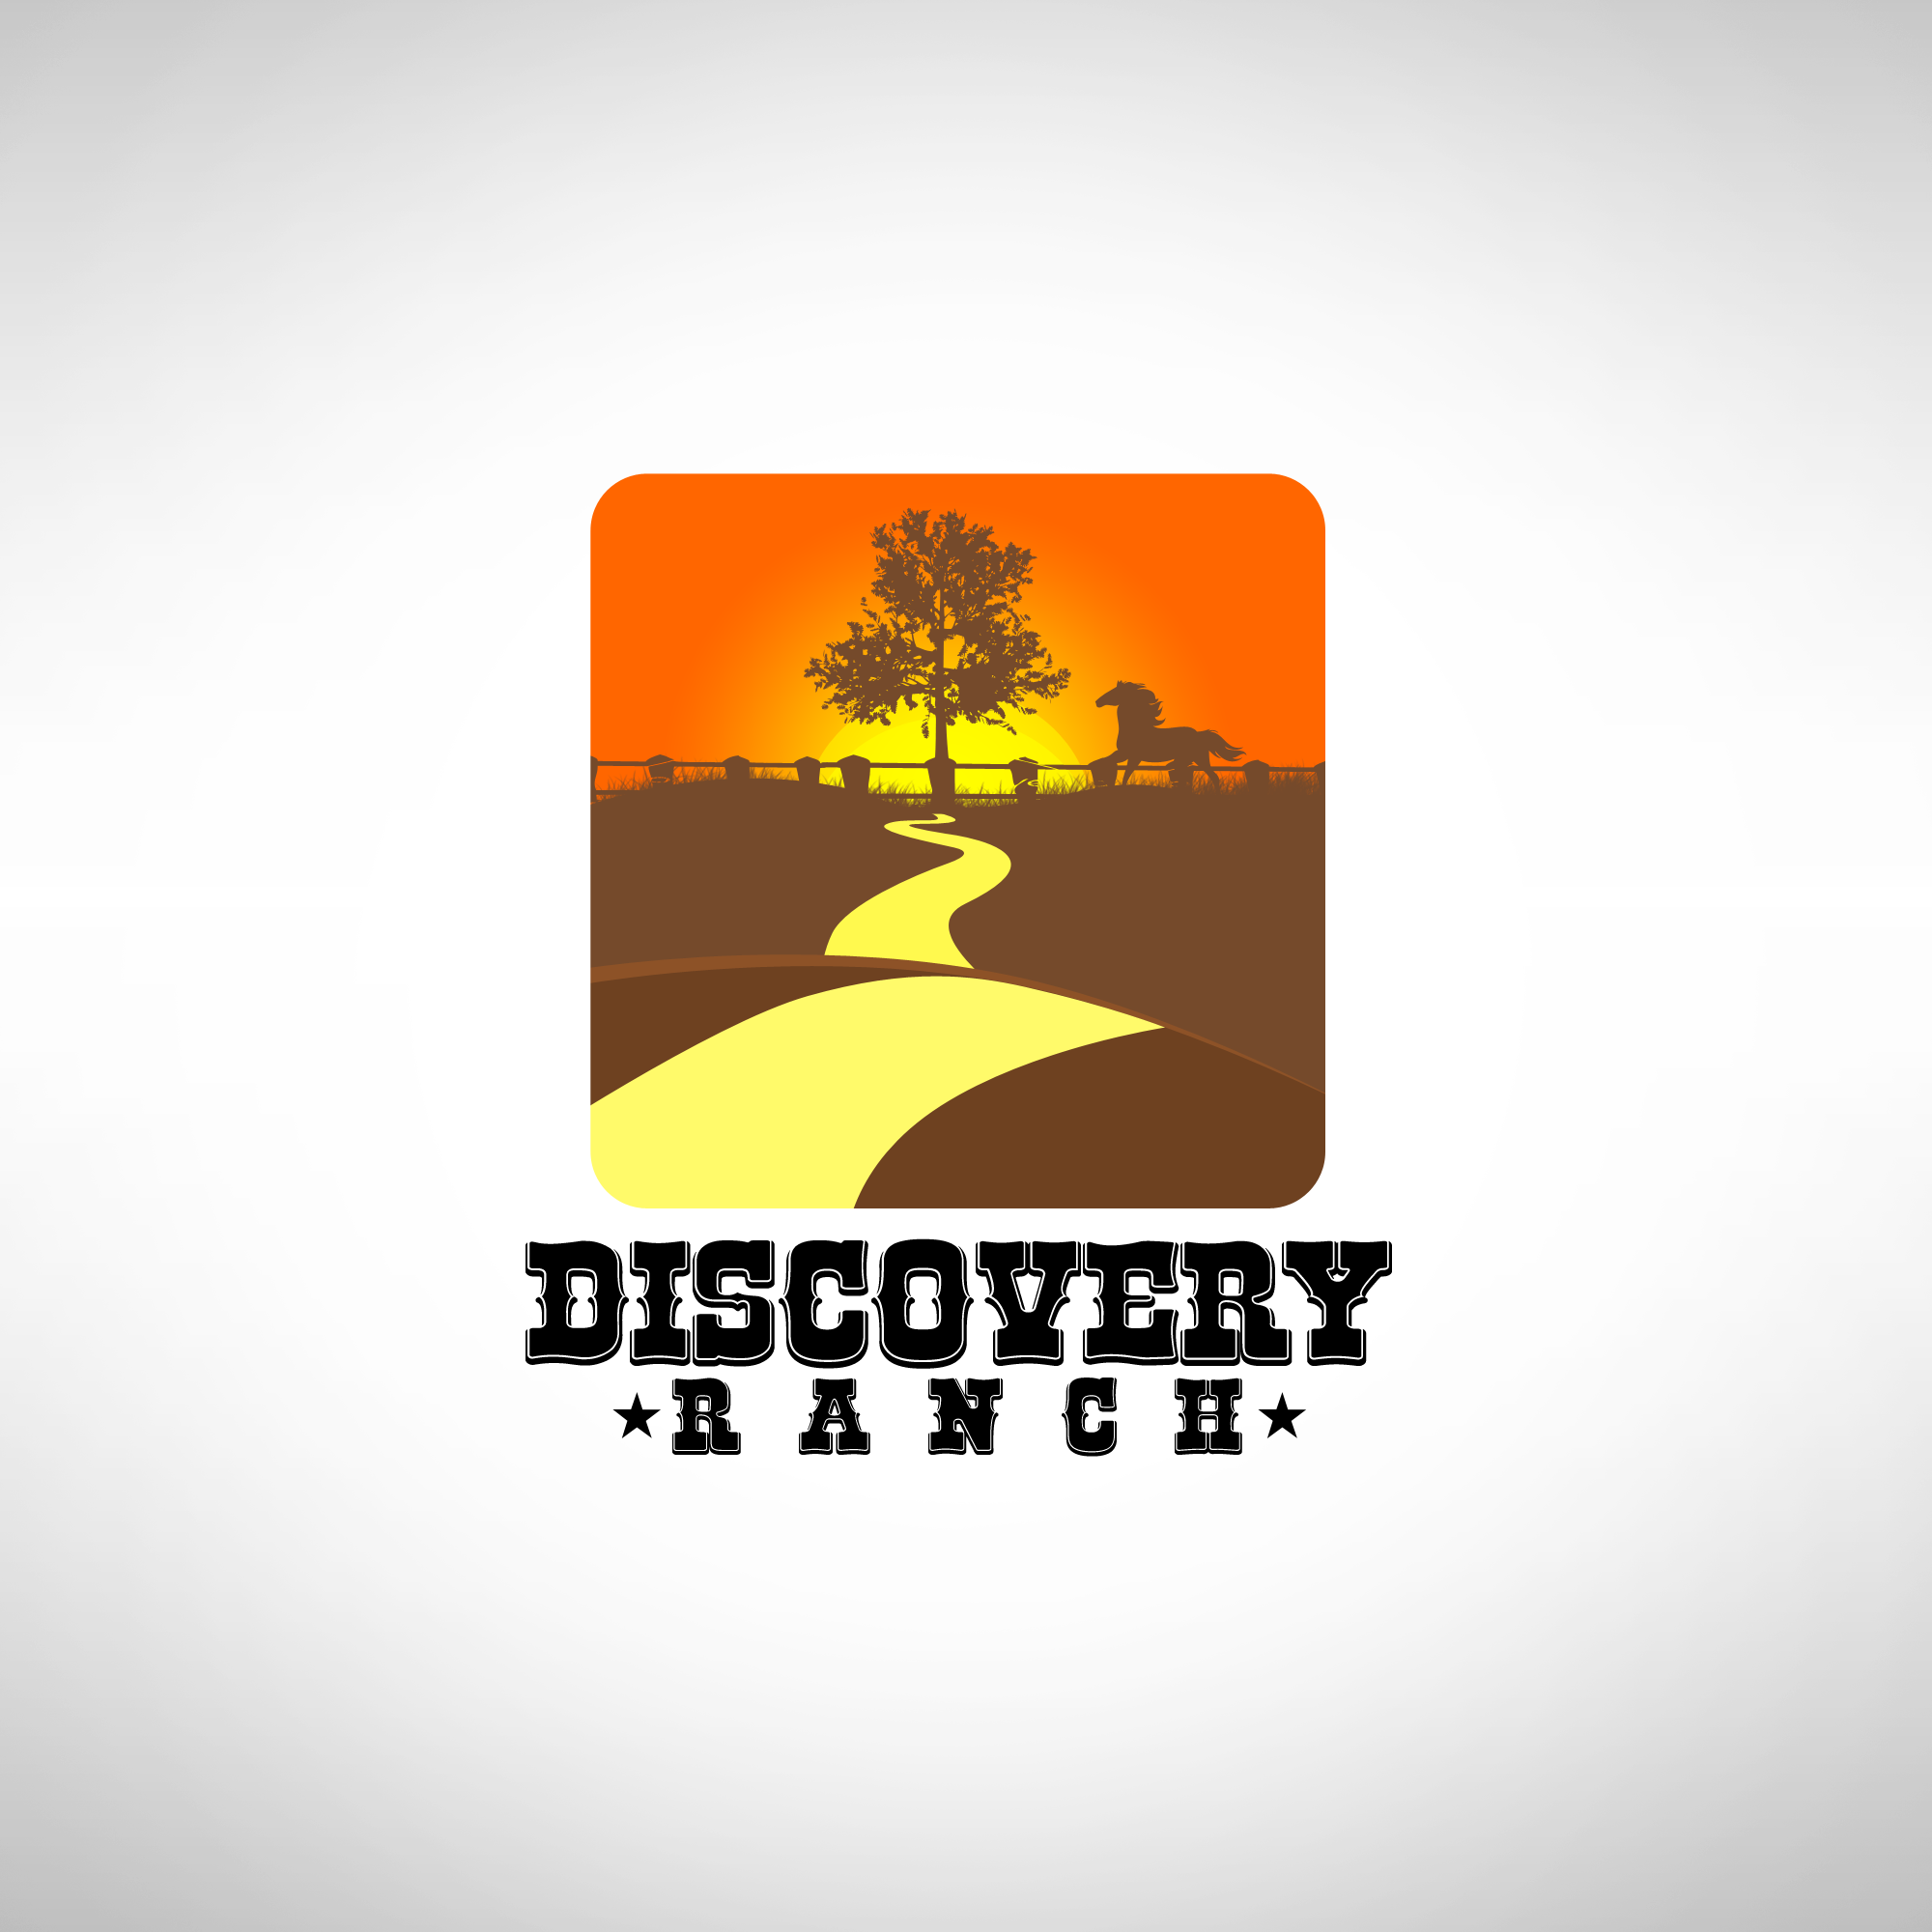 Logo Design by Kenneth Joel - Entry No. 58 in the Logo Design Contest Creative Logo Design for Discovery Ranch.